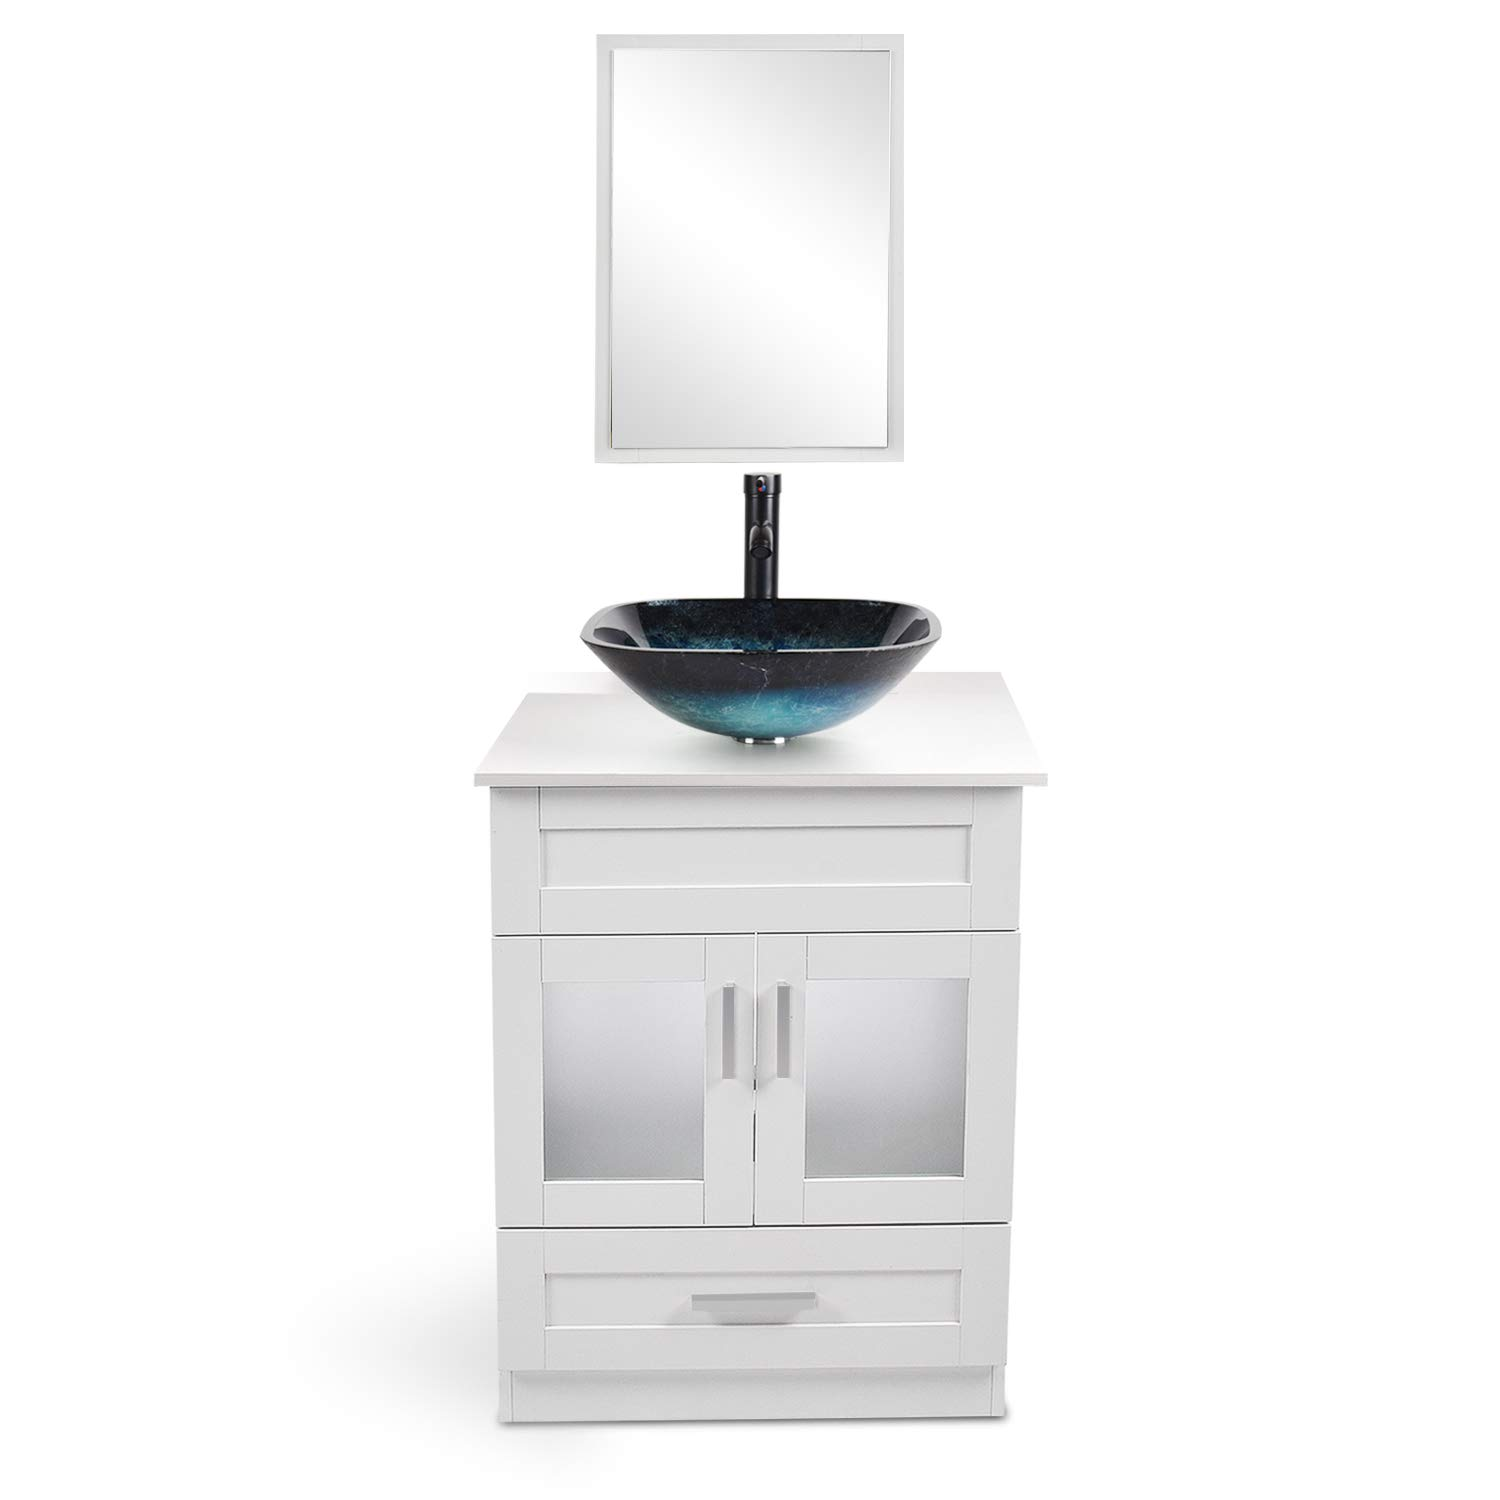 bathroom vanity 24 inch with sink wall mounted eco pvc sink cabinet vanity organizers with counter top glass vessel sink vanity mirror and 1 5 gpm